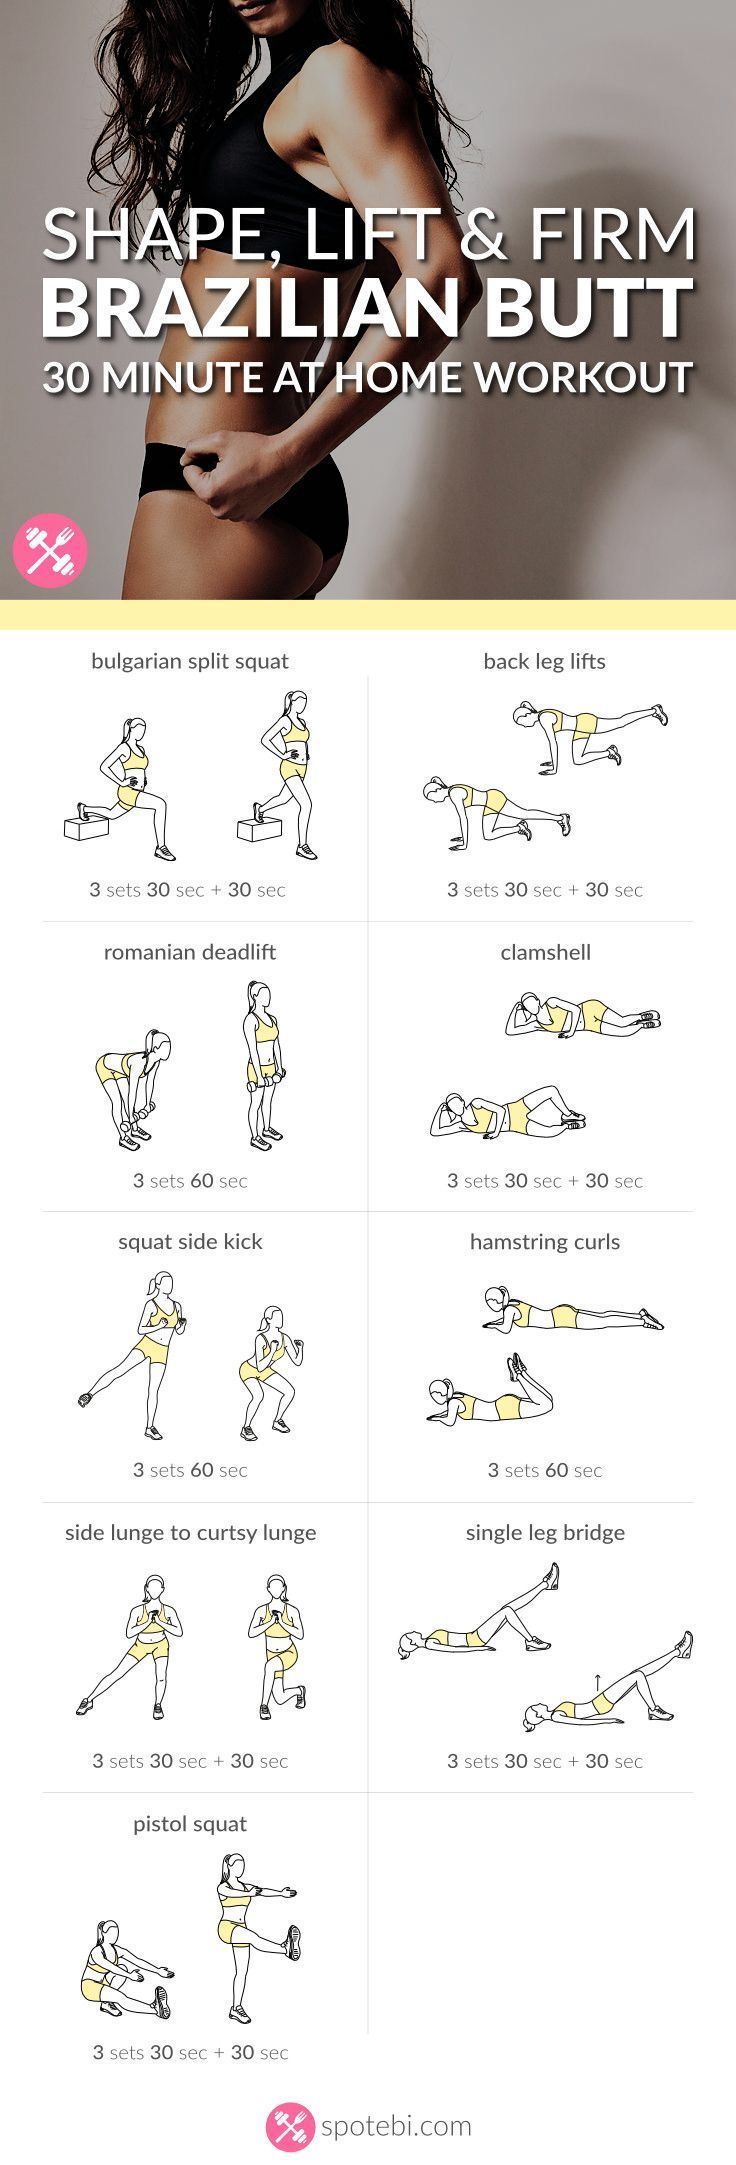 Want to know the secret to a perfect booty? Try this 30 minute sculpting and lifting Brazilian butt workout. Shape and firm your glutes and thighs fast! http://www.spotebi.com/workout-routines/shape-lift-firm-brazilian-butt-workout/